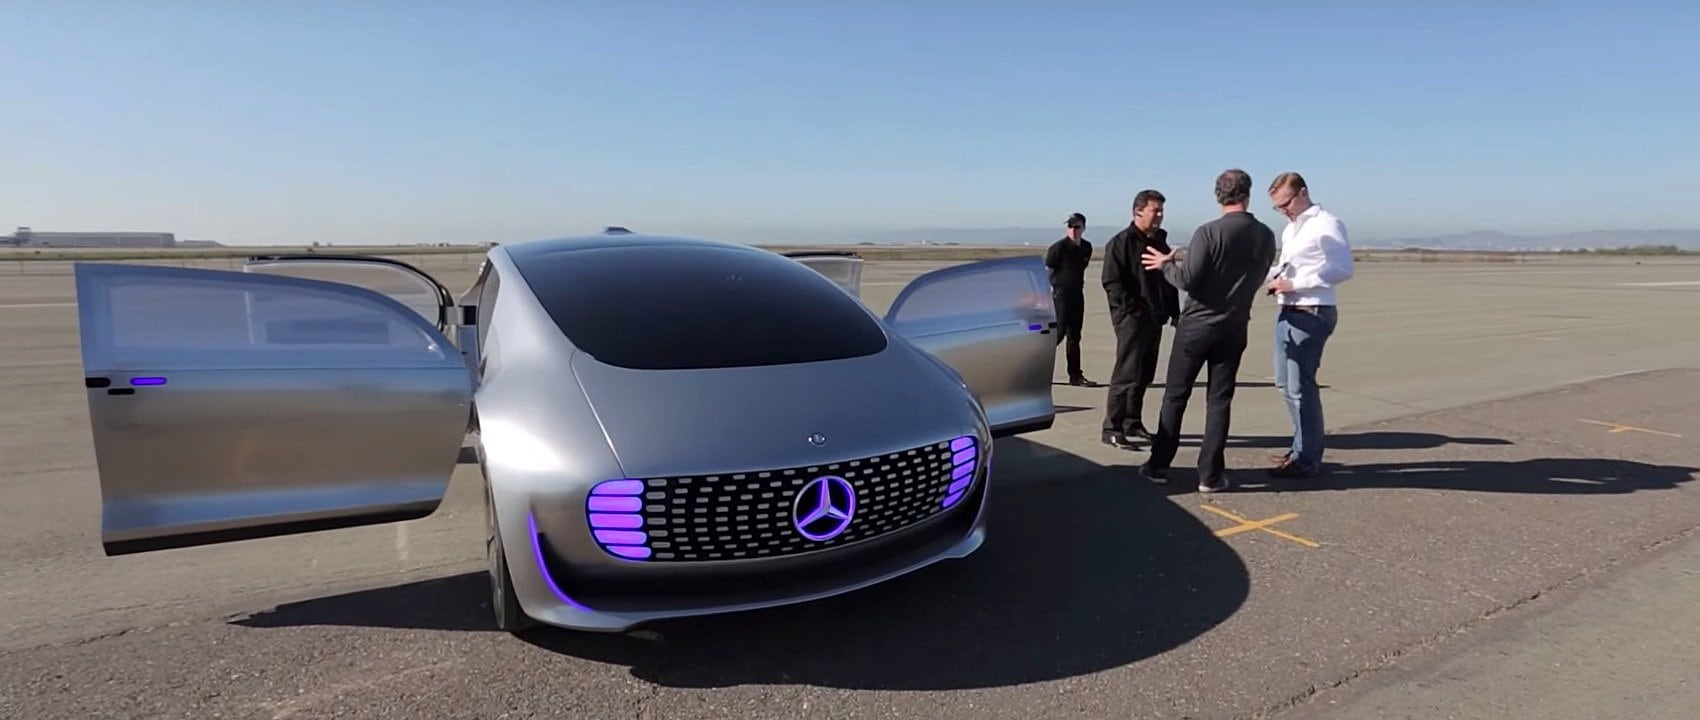 Semi-profile view of the Mercedes-Benz research car F 015 Luxury in Motion with open doors.